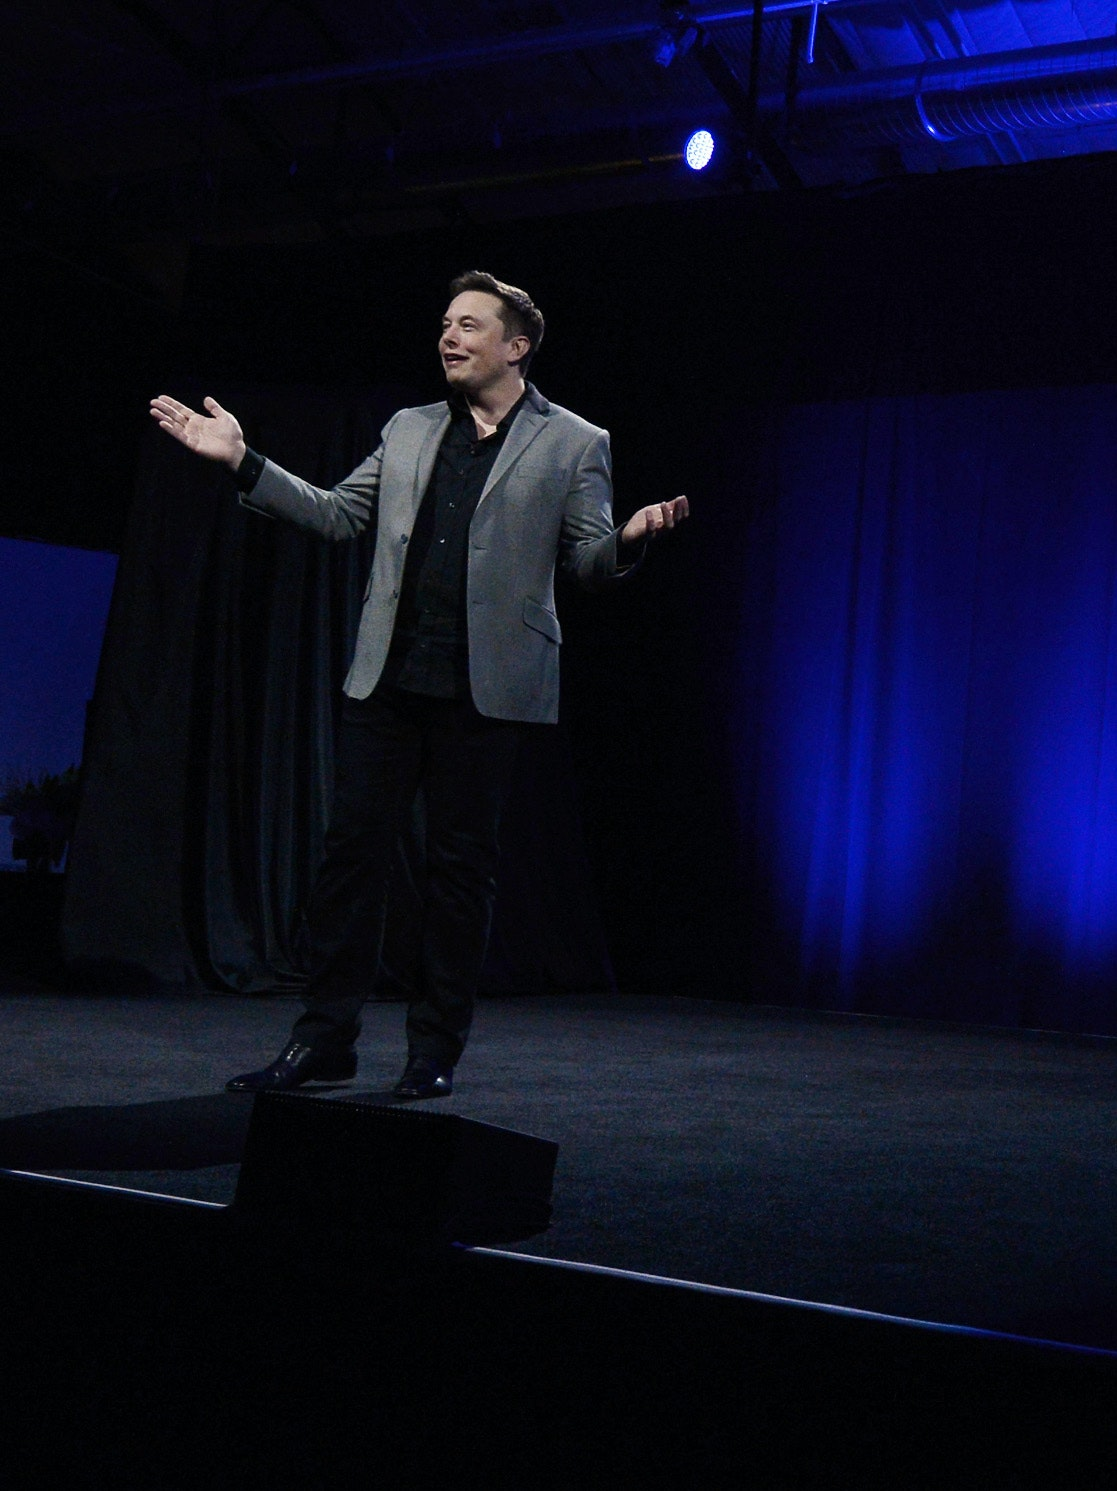 LOS ANGELES, CA - APRIL 30:  Elon Musk, CEO of Tesla, with a Powerwall system on display unveils suite of batteries for homes, businesses, and utilities at the Tesla Design Studio April 30, 2015 in Hawthorne, California. Musk unveiled the home battery named Powerwall with a selling price of $3500 for 10kWh and $3000 for 7kWh and very large utility pack called Powerpack. (Photo by Kevork Djansezian/Getty Images)